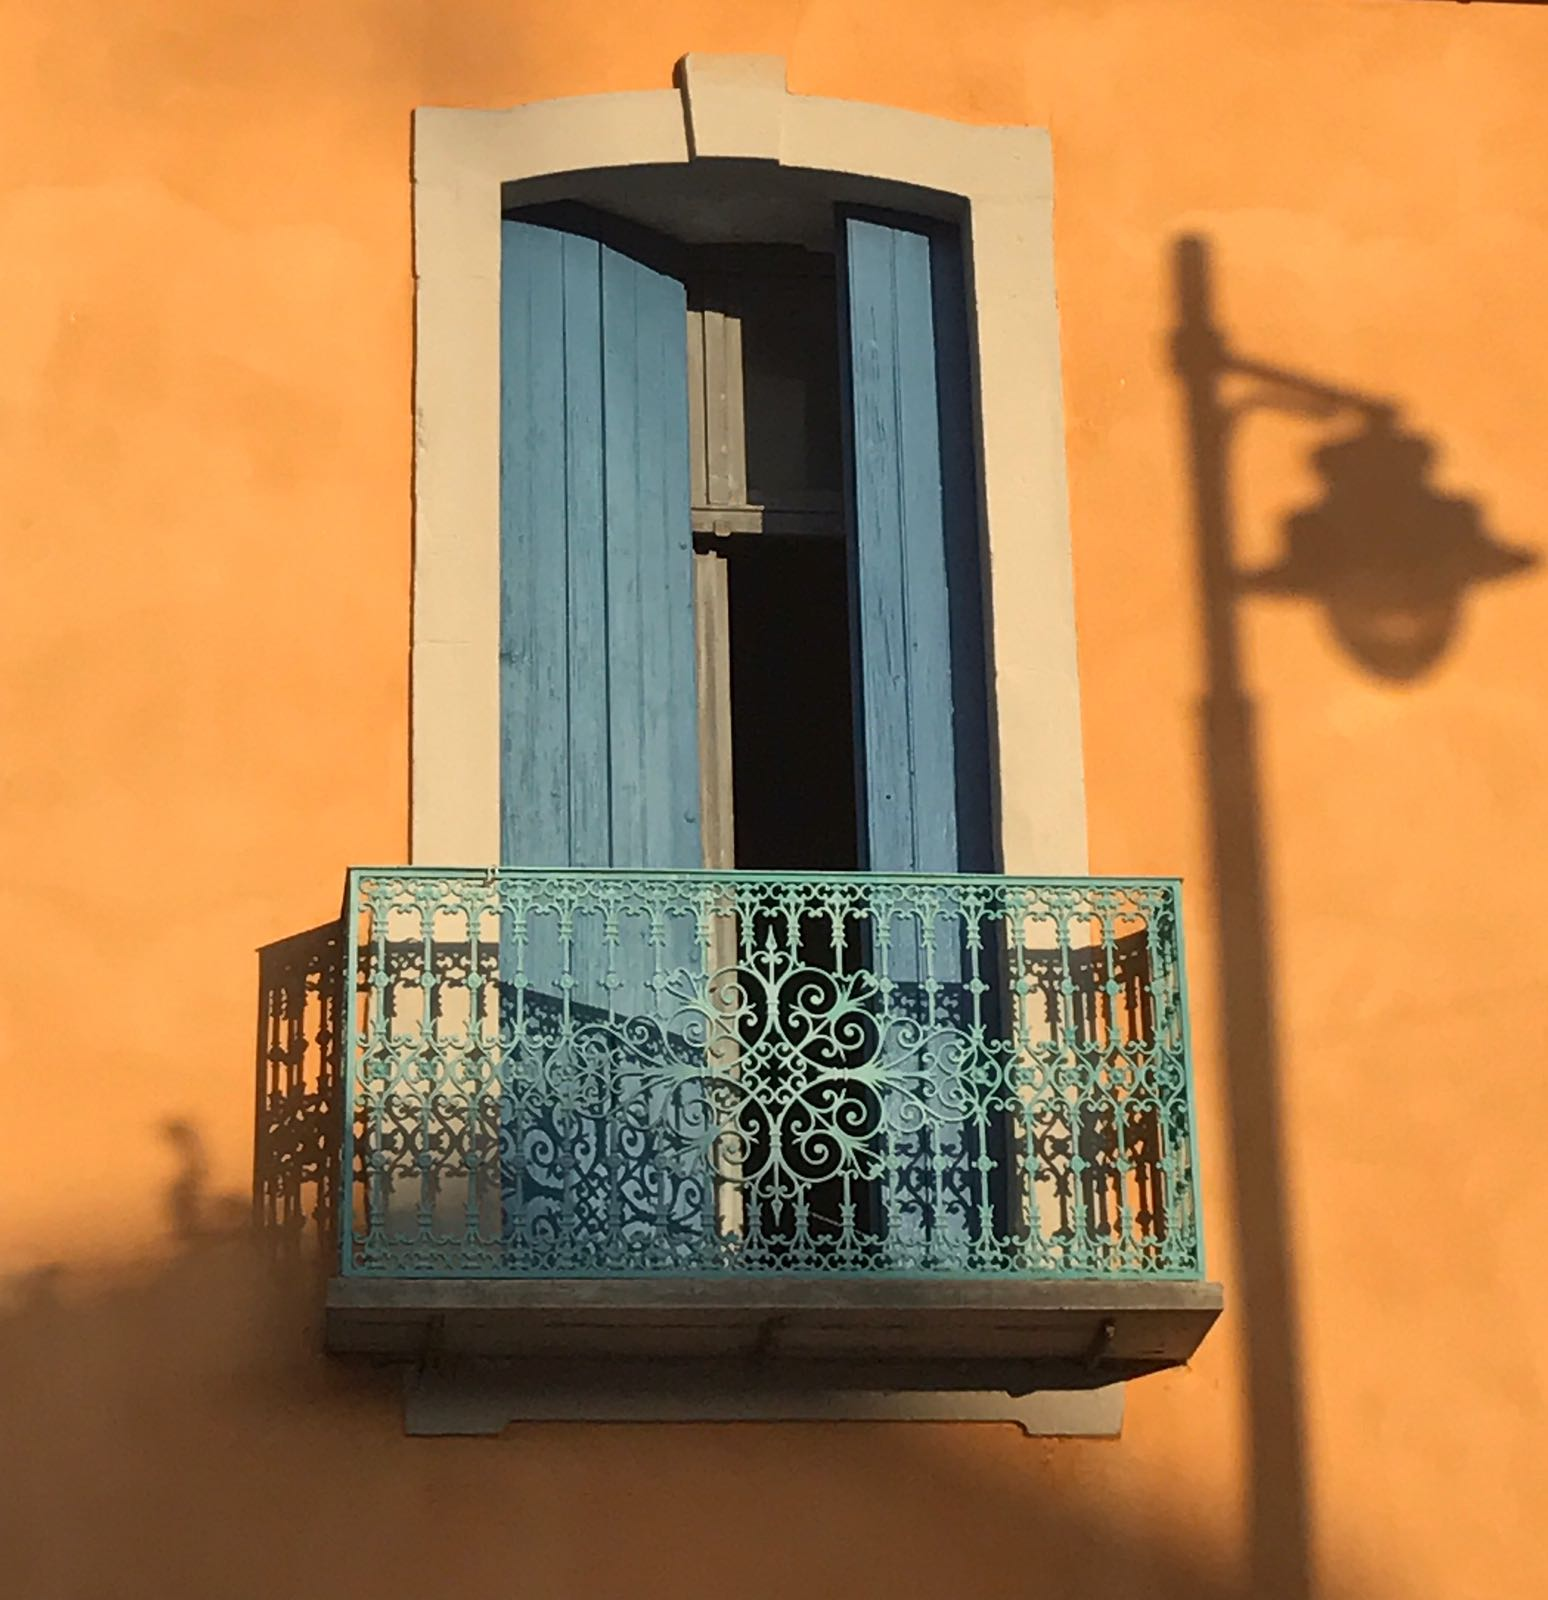 Balcony in Marseillan with blue railings and shutters against a yellow building